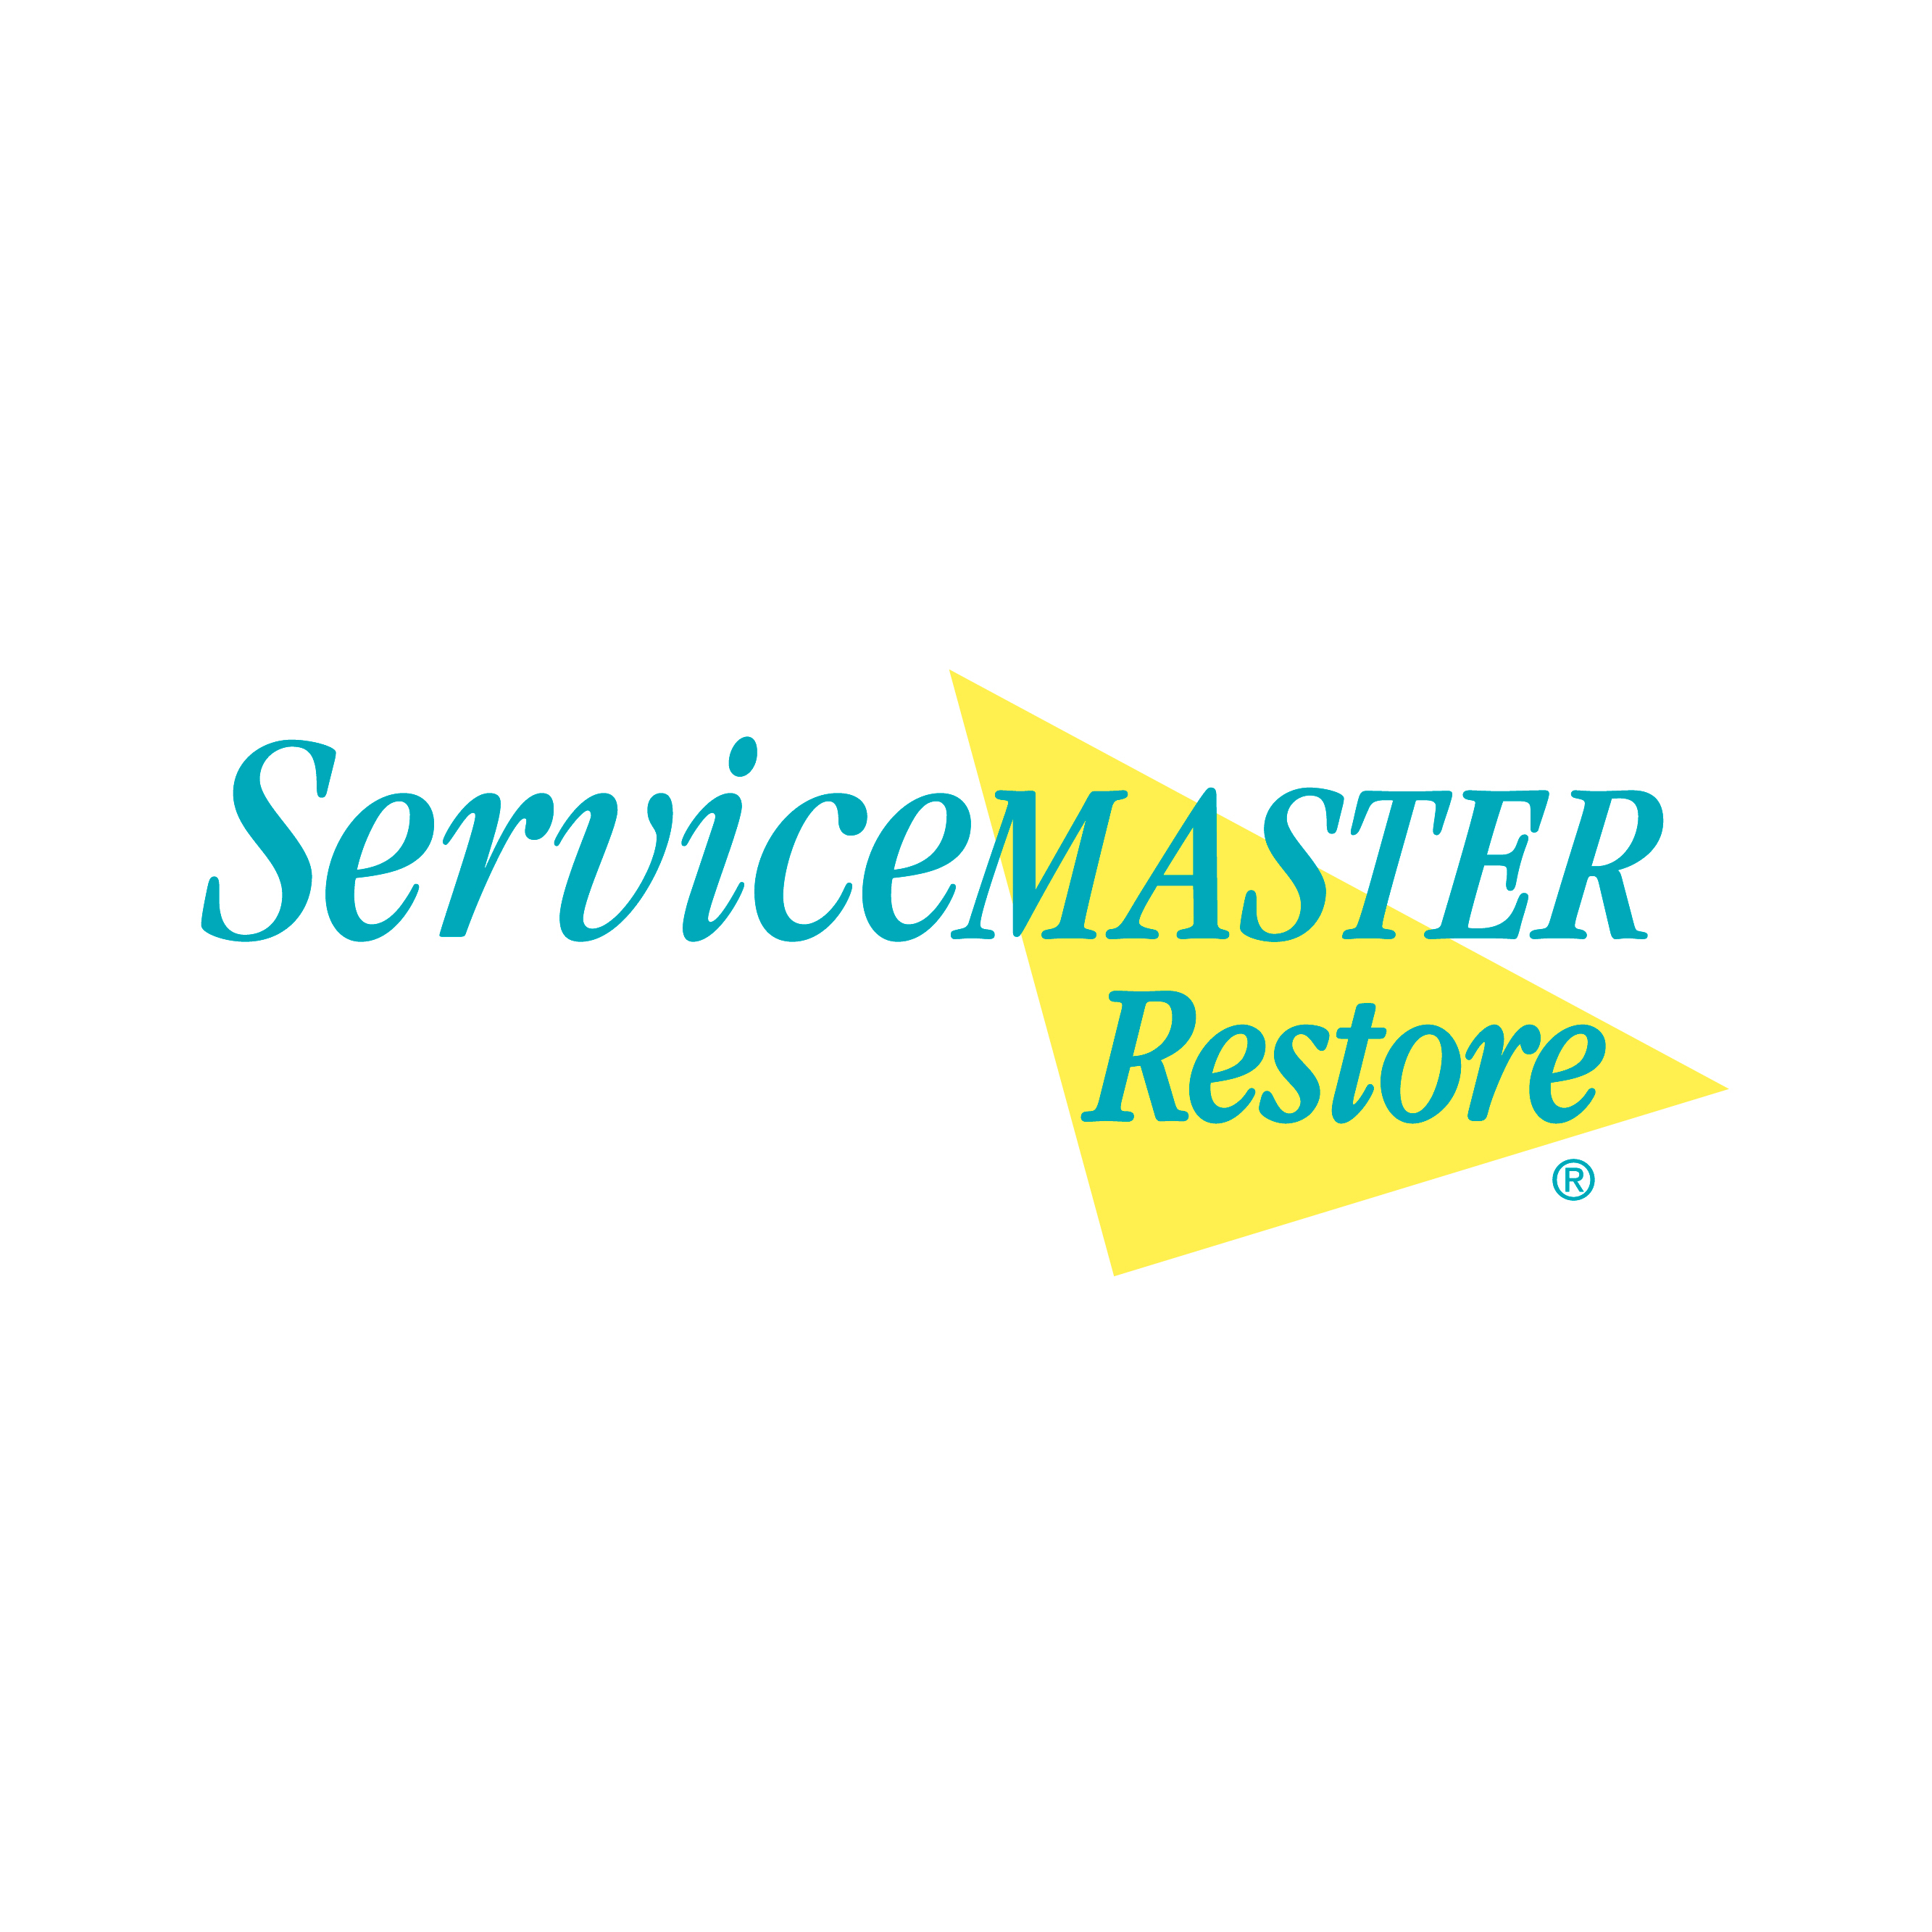 ServiceMaster Professional Restoration and Cleaning by Jouny - Dearborn Heights, MI 48127 - (313)317-4000 | ShowMeLocal.com